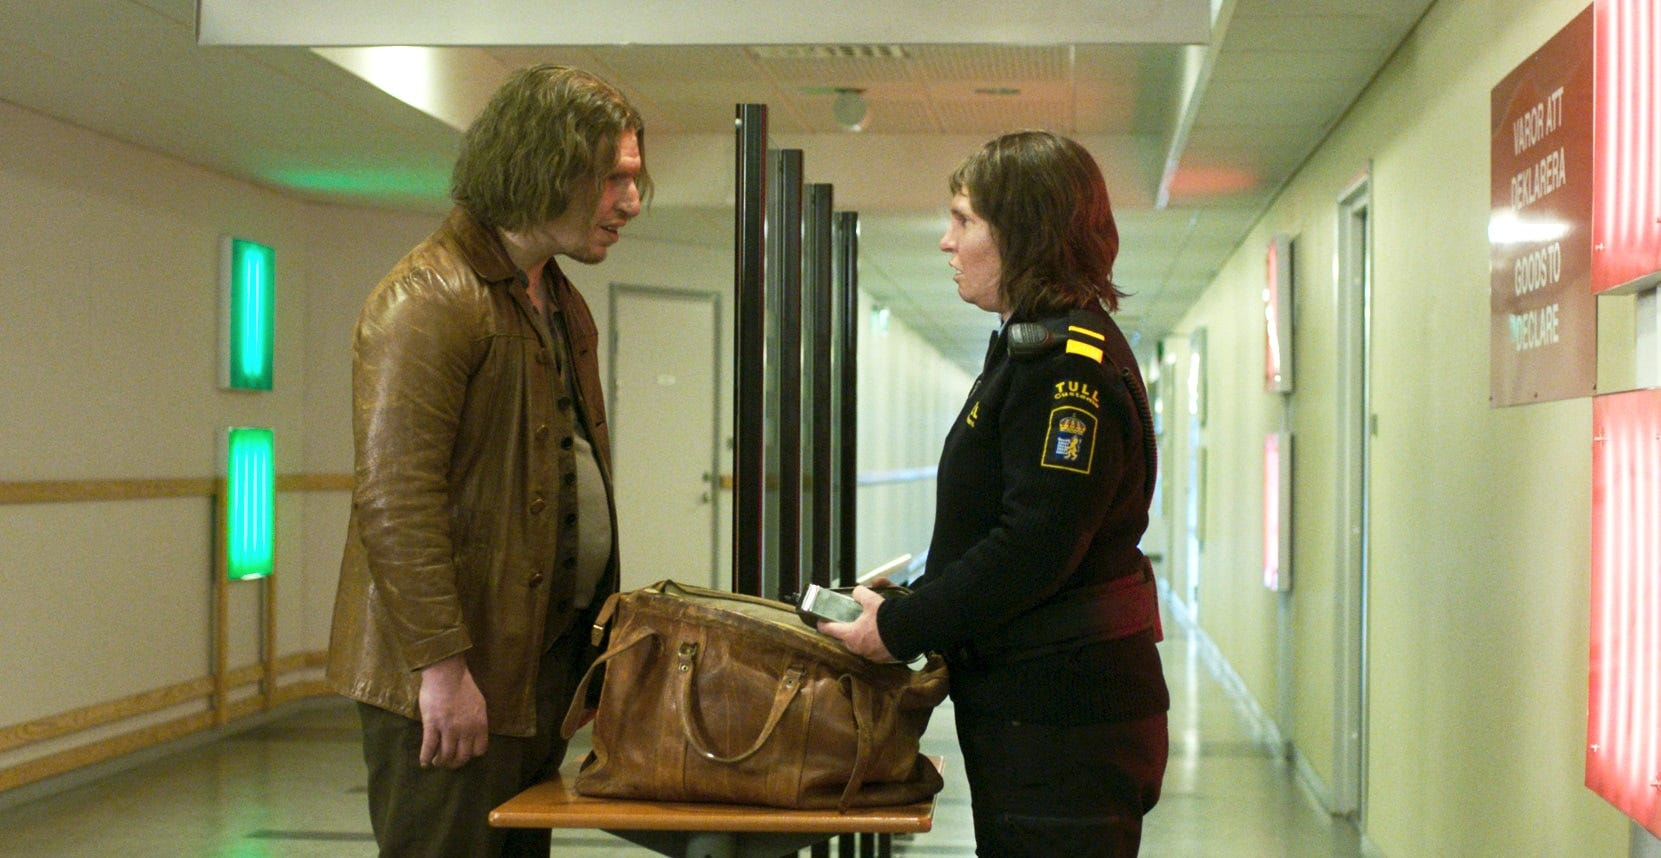 """Vore (Eero Milonoff), a mysterious traveler, poses a challenge for Swedish customs official Tina (Eva Melander) in """"Border."""""""